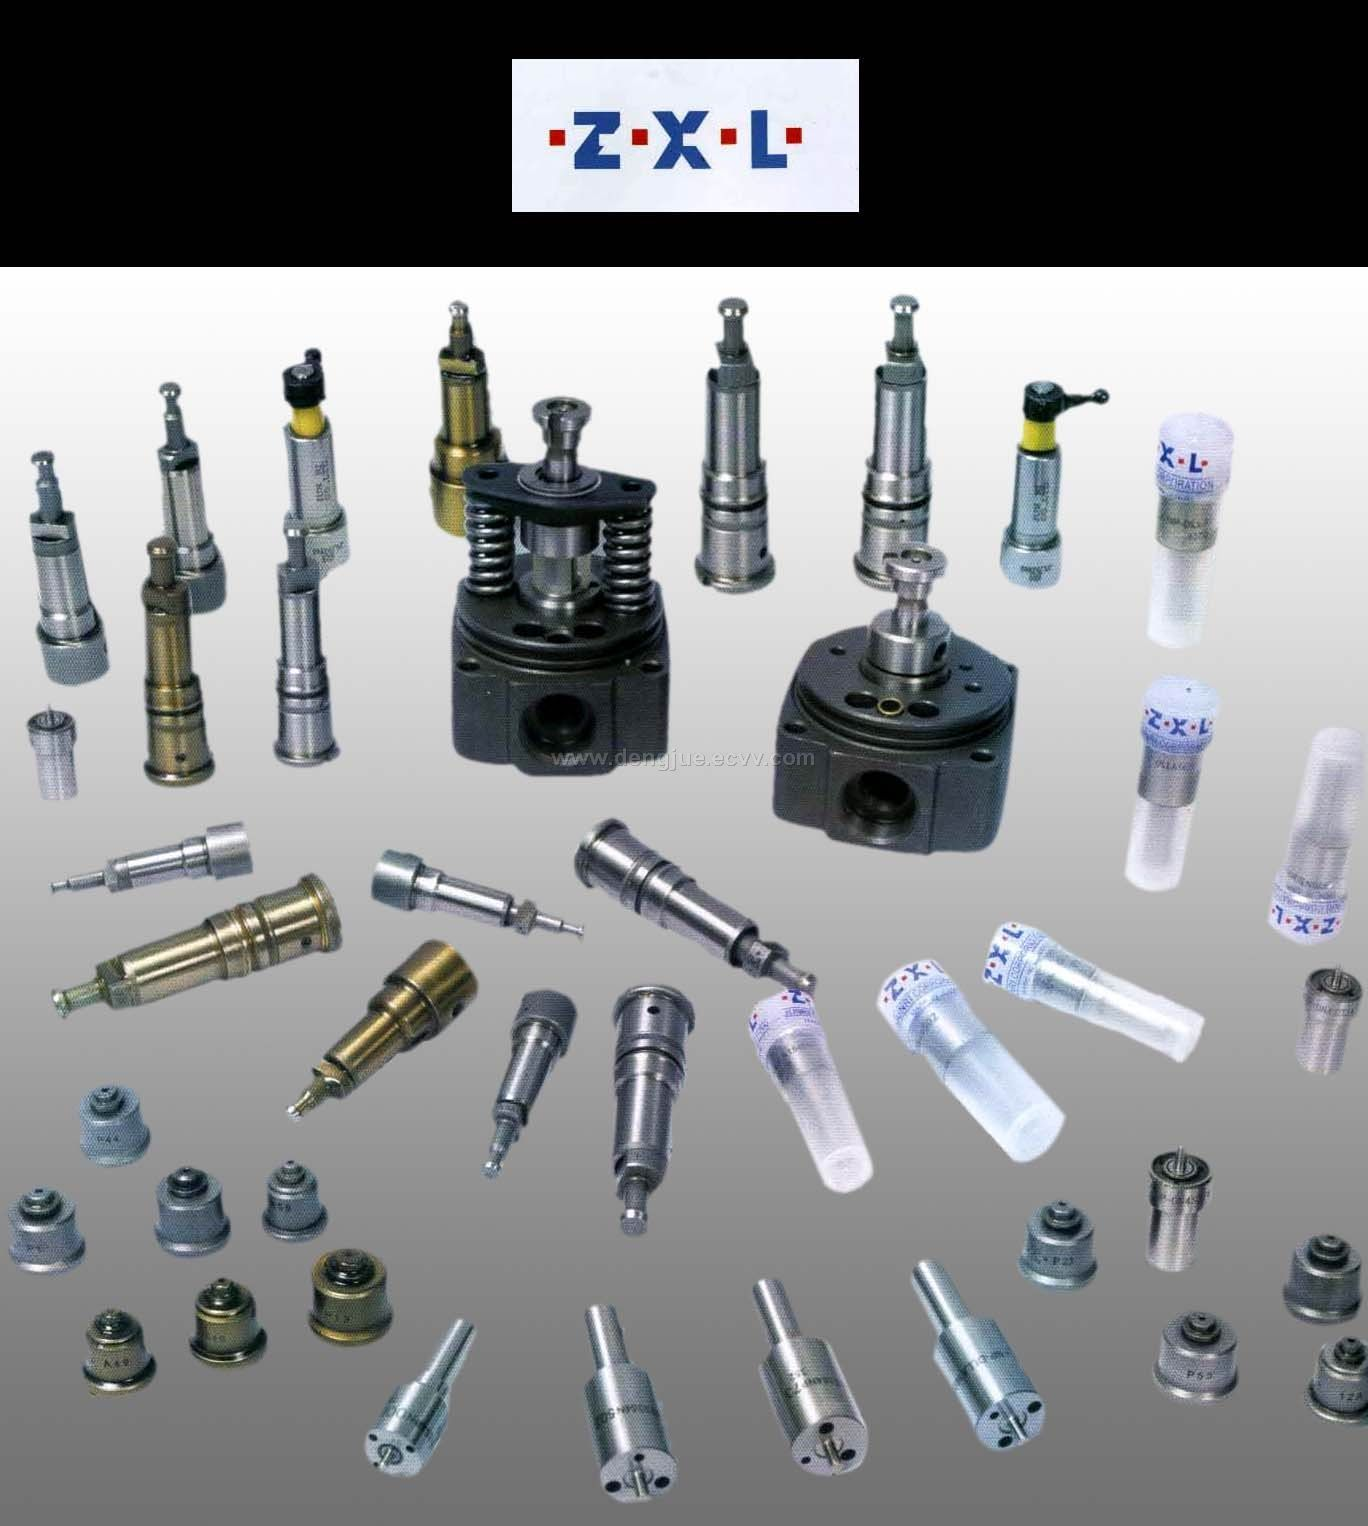 Zxl Nozzle, Element, Delivery Valve & Distributor Pump